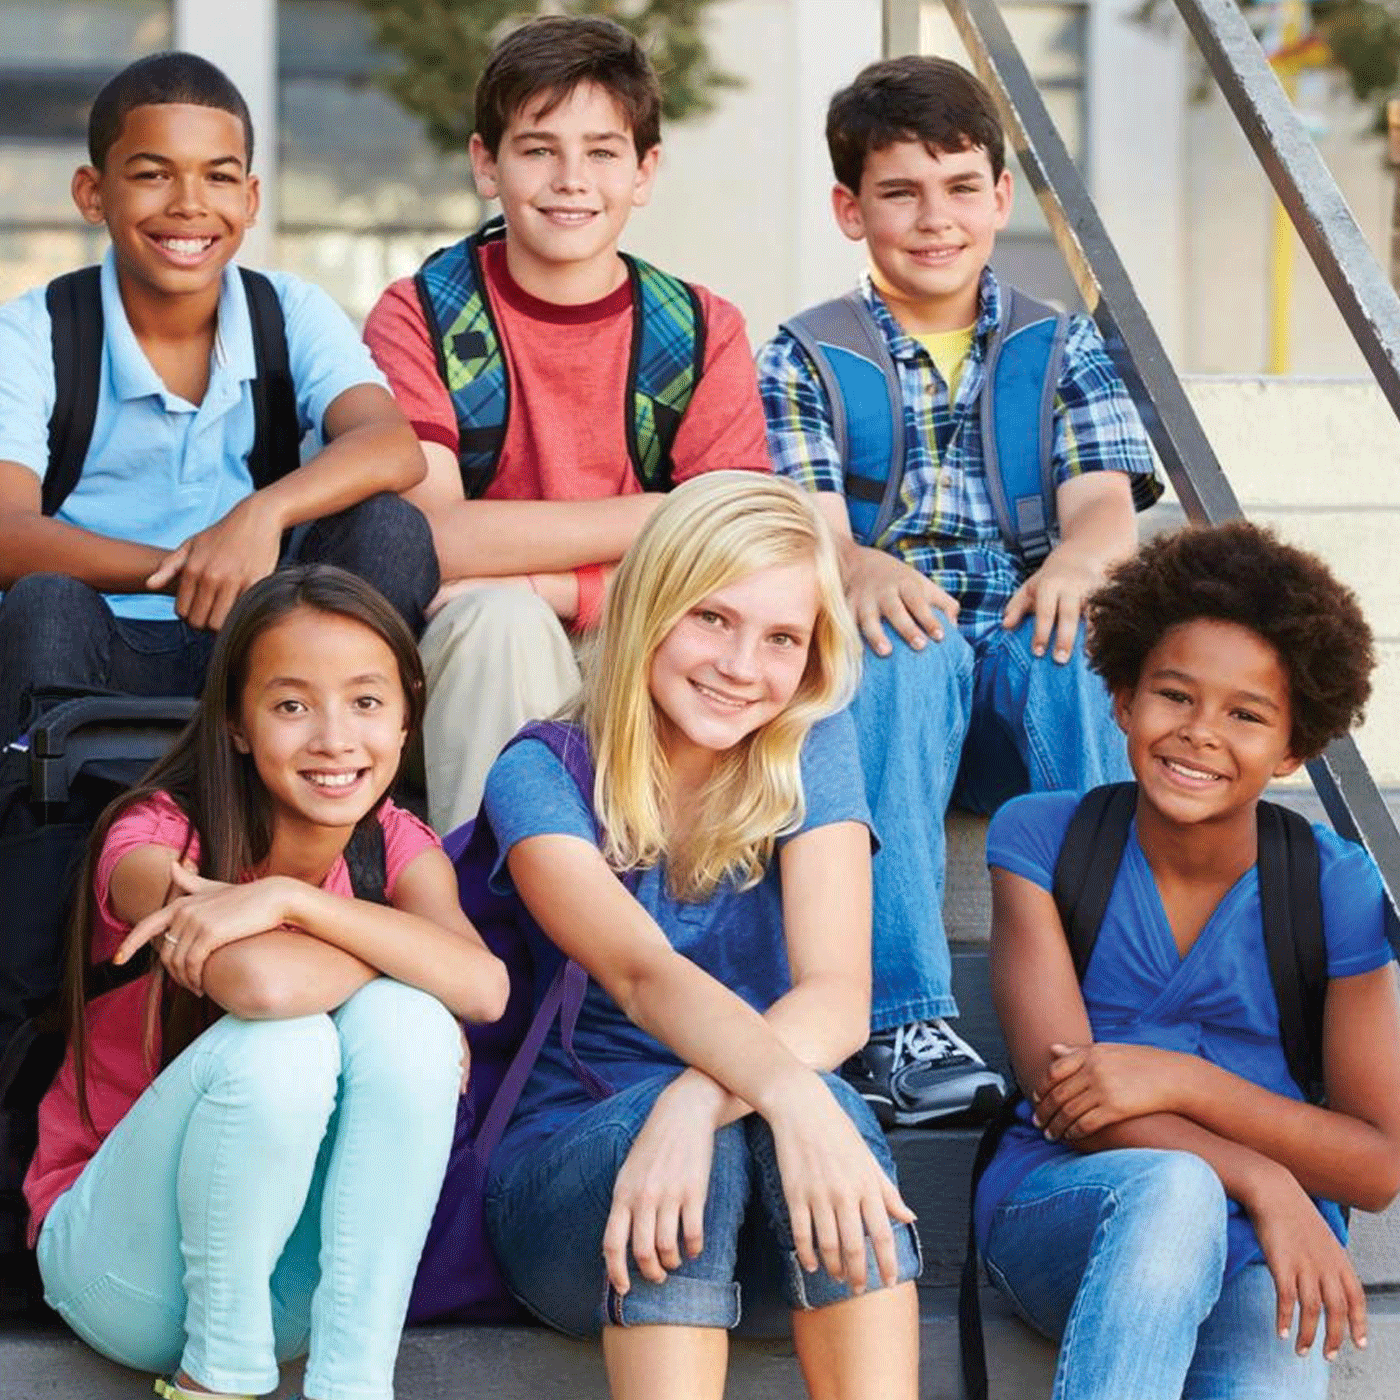 A group of students wearing backpacks sits on a flight of steps, smiling for the camera.